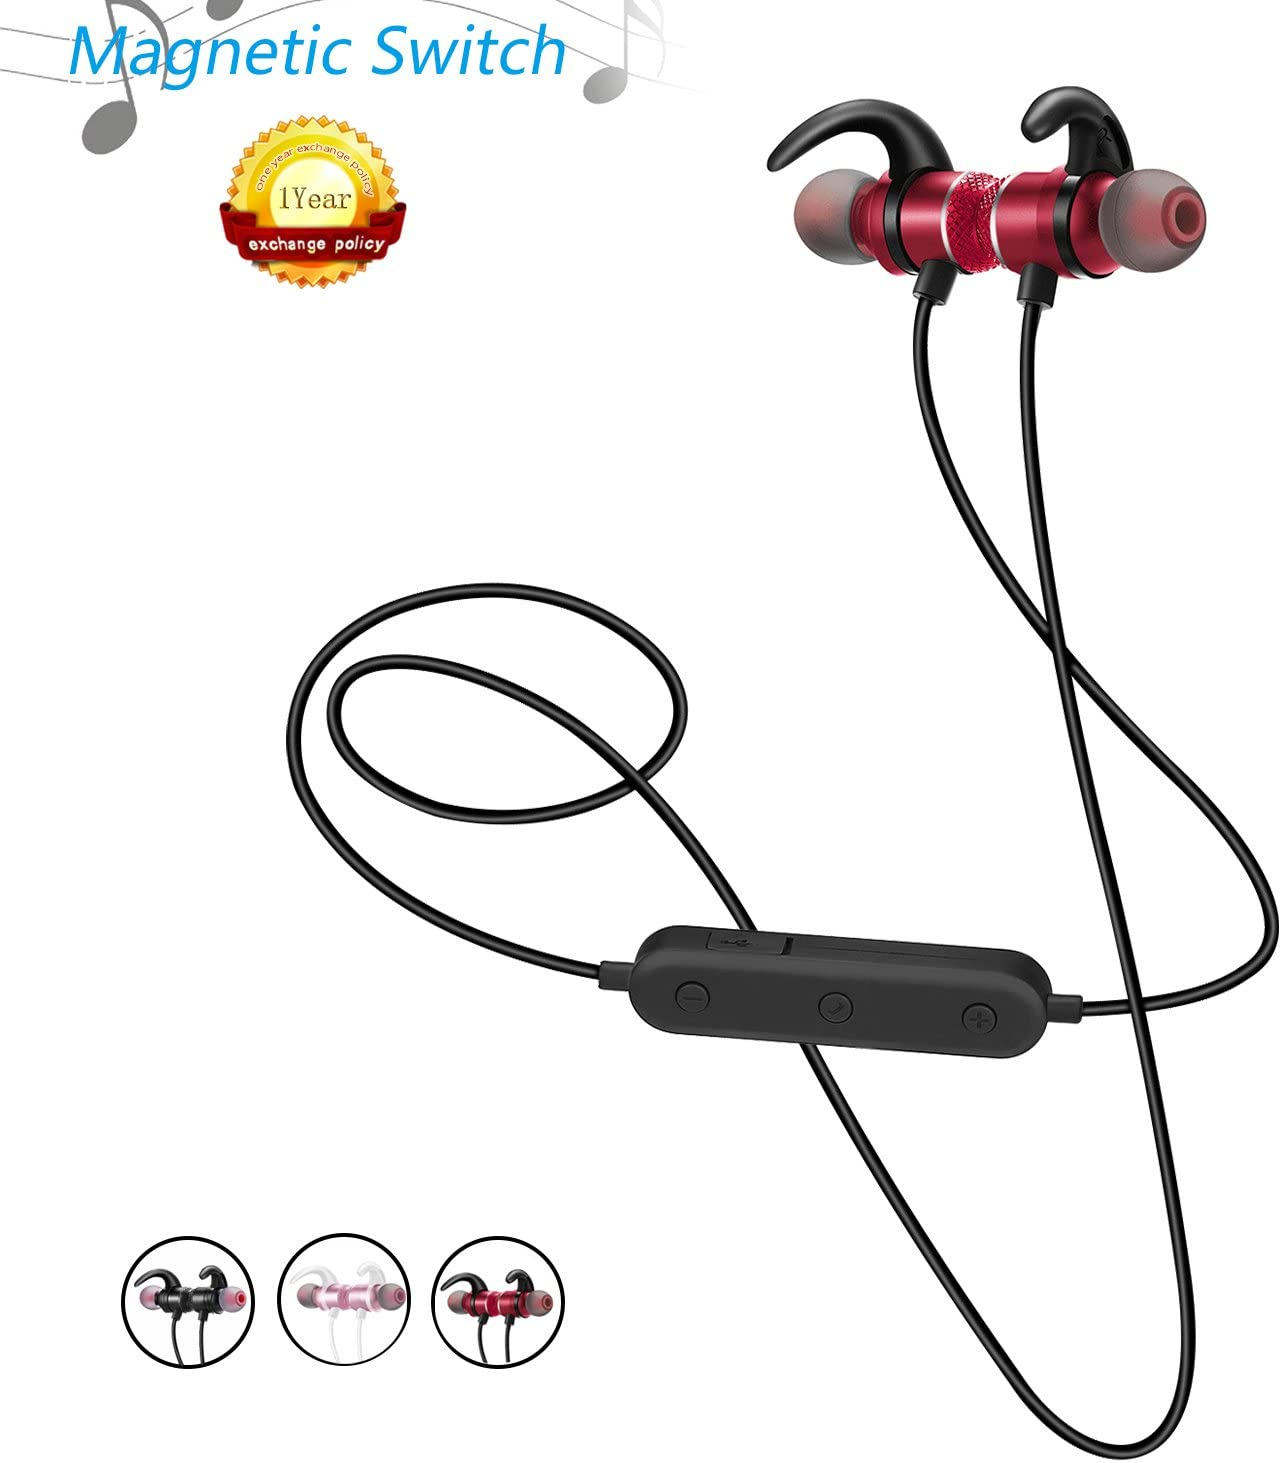 Sport Wireless Bluetooth Headphonewith Magnetic SwitchStereo, Sweatproof, Noise Cancelling, Hands-Free Calling and Voice Notification, Perfect for for Running Workout Gym. -DOUSOUB M1 (red)